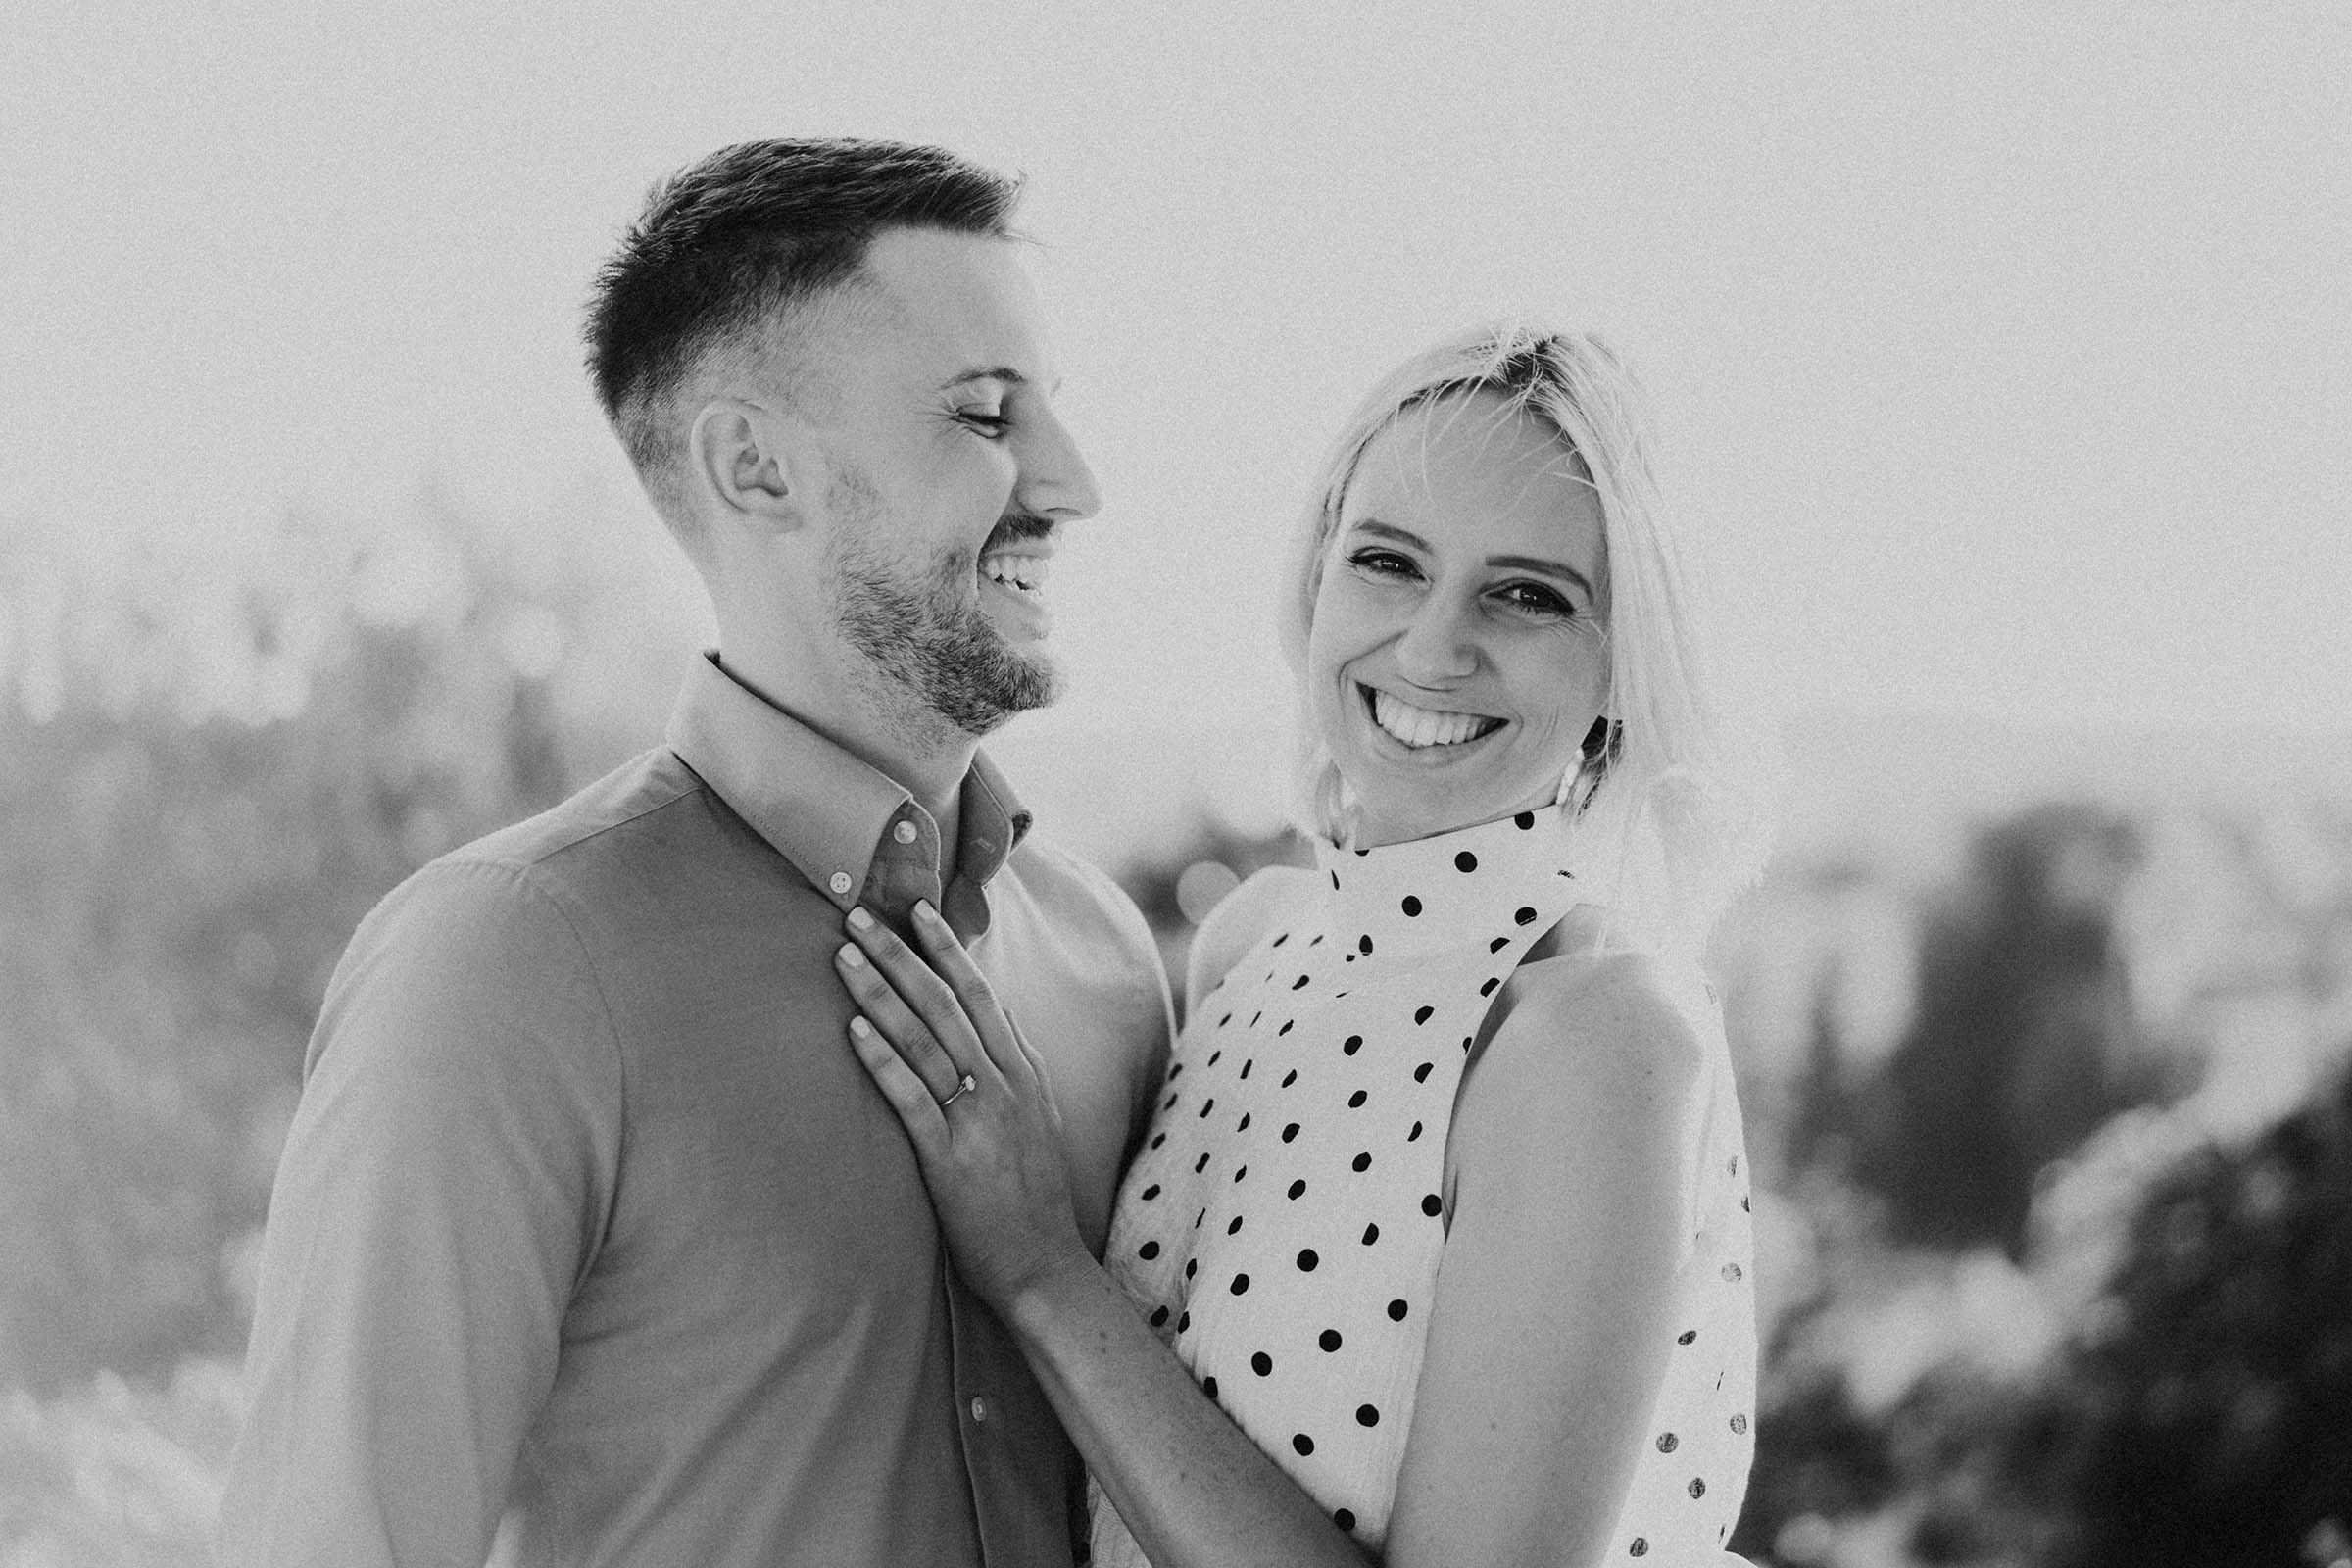 newly engaged couple photo in black and white